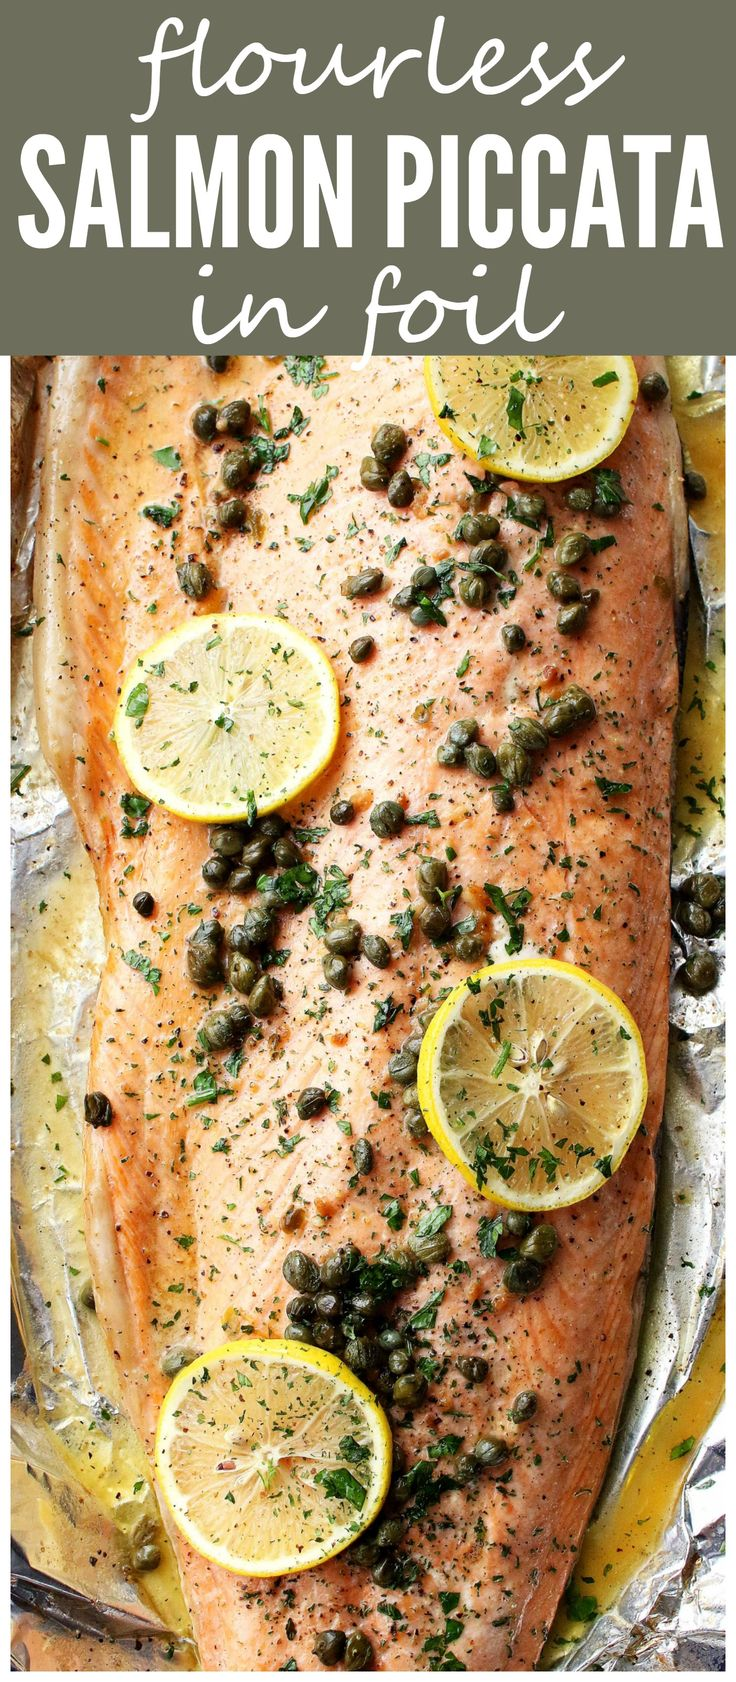 Flourless Salmon Piccata in Foil – A healthy and incredibly delicious dinner with flourless piccata sauce poured over salmon and cooked in foil.